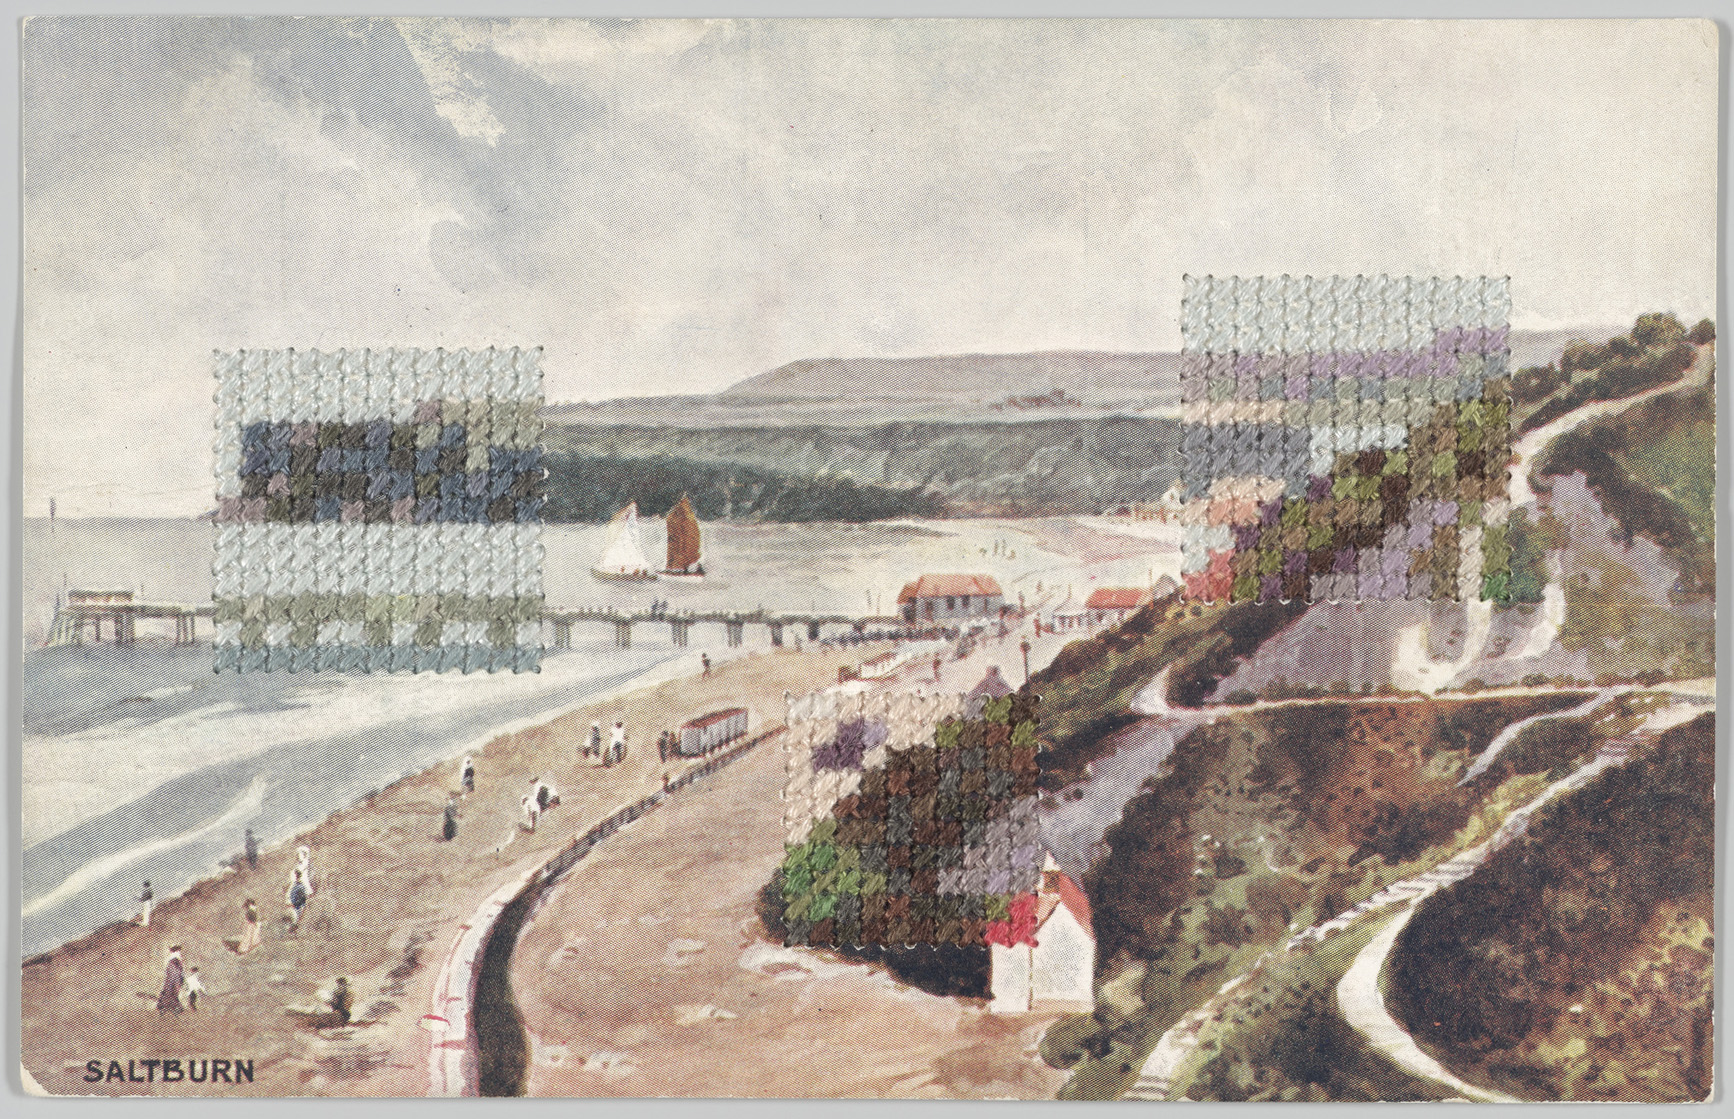 Coloured landscape postcard with three patches of embroidery stitches that mimic the design in colour and layout.